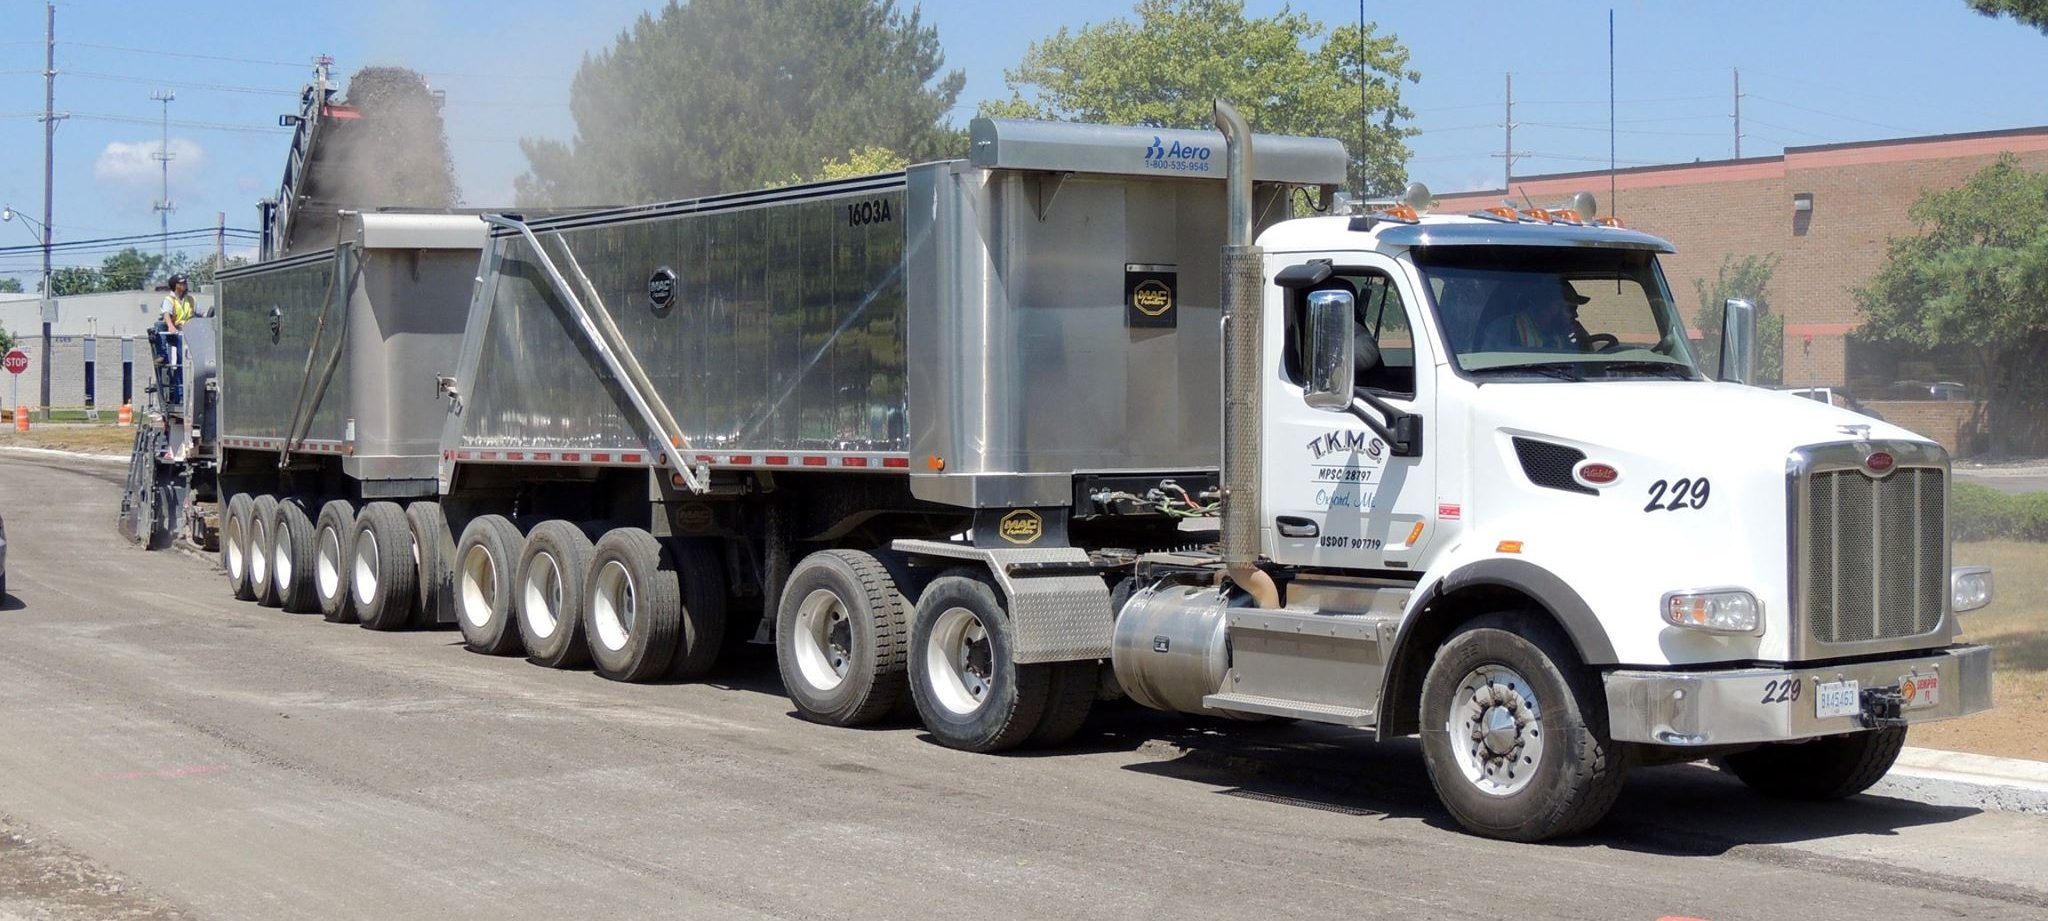 Tkms Is Hiring Class A Drivers In Milford Flat Rock And